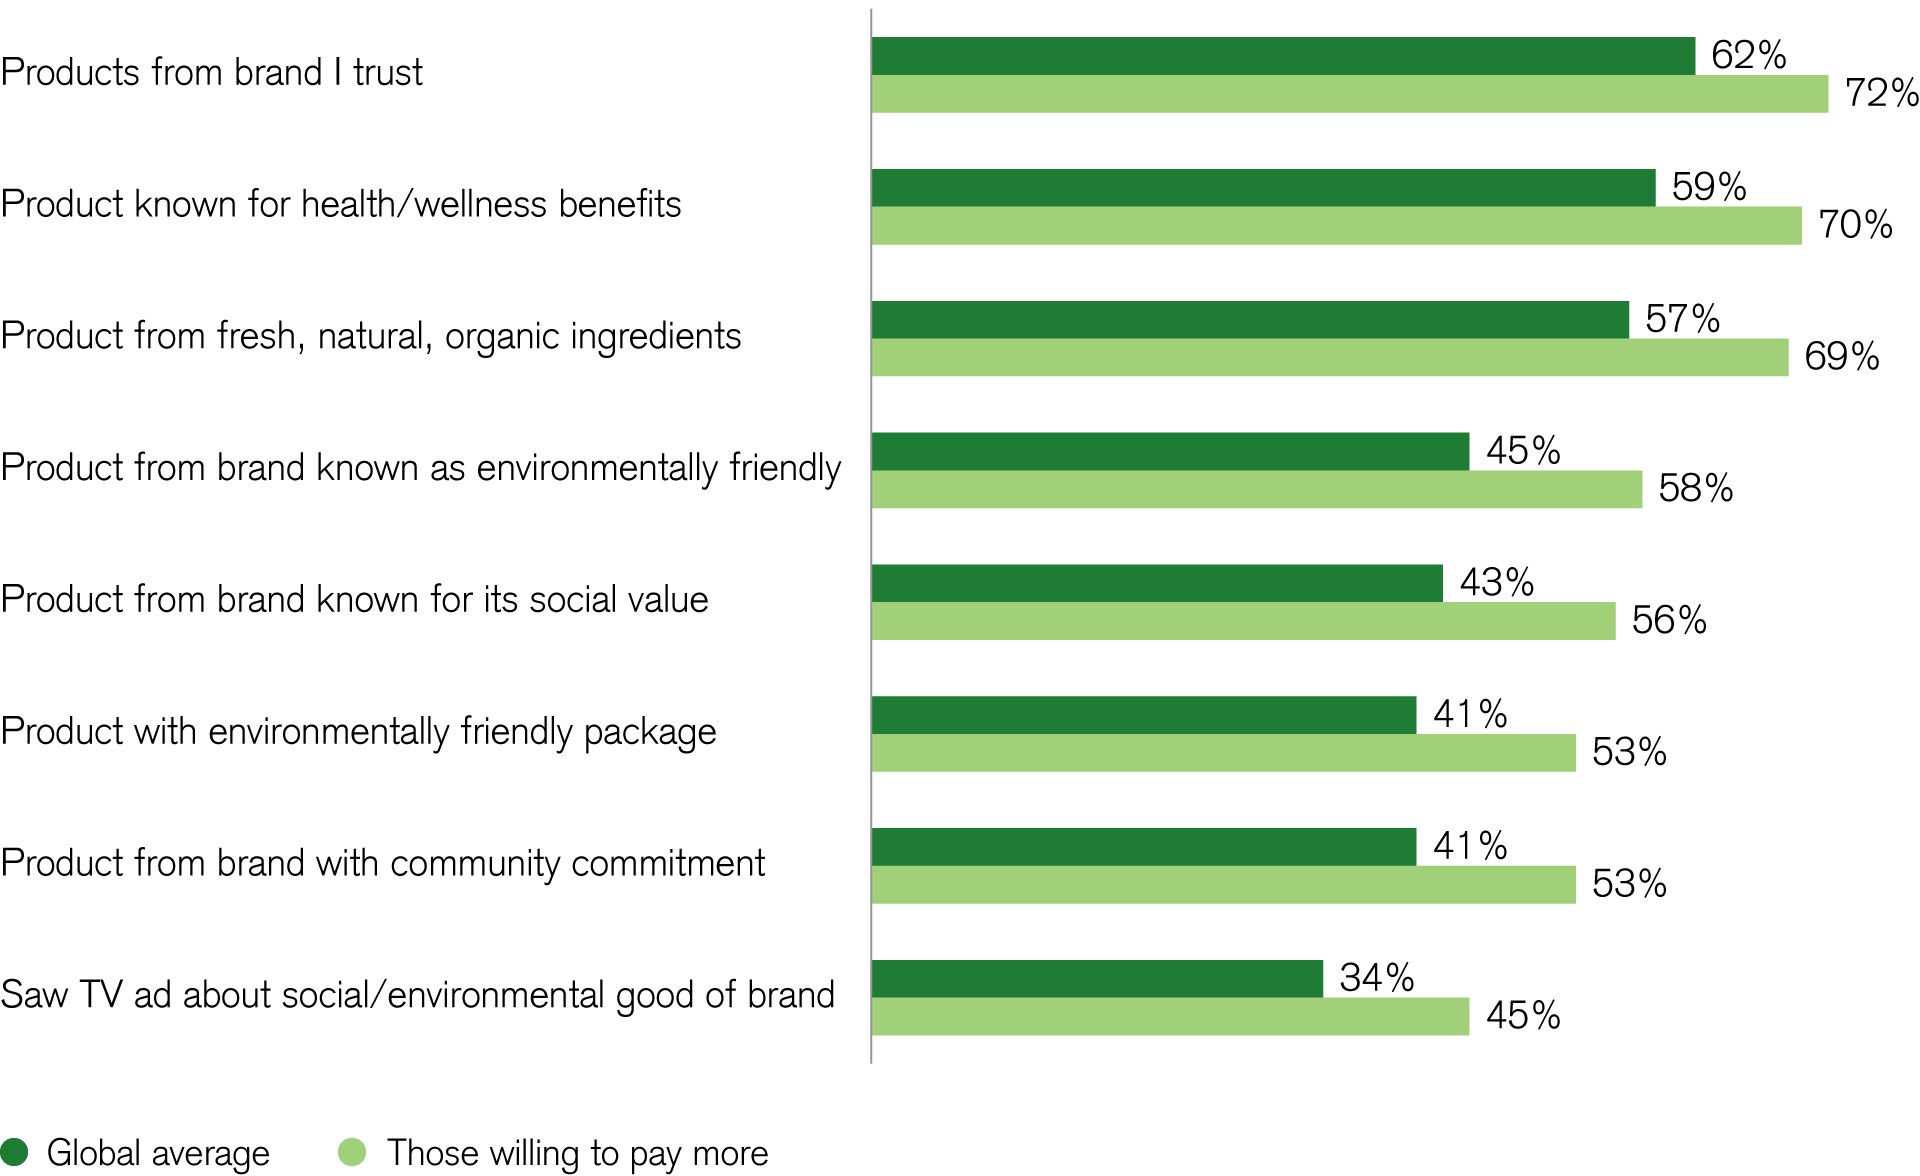 Sustainability considerations drive consumers' purchases